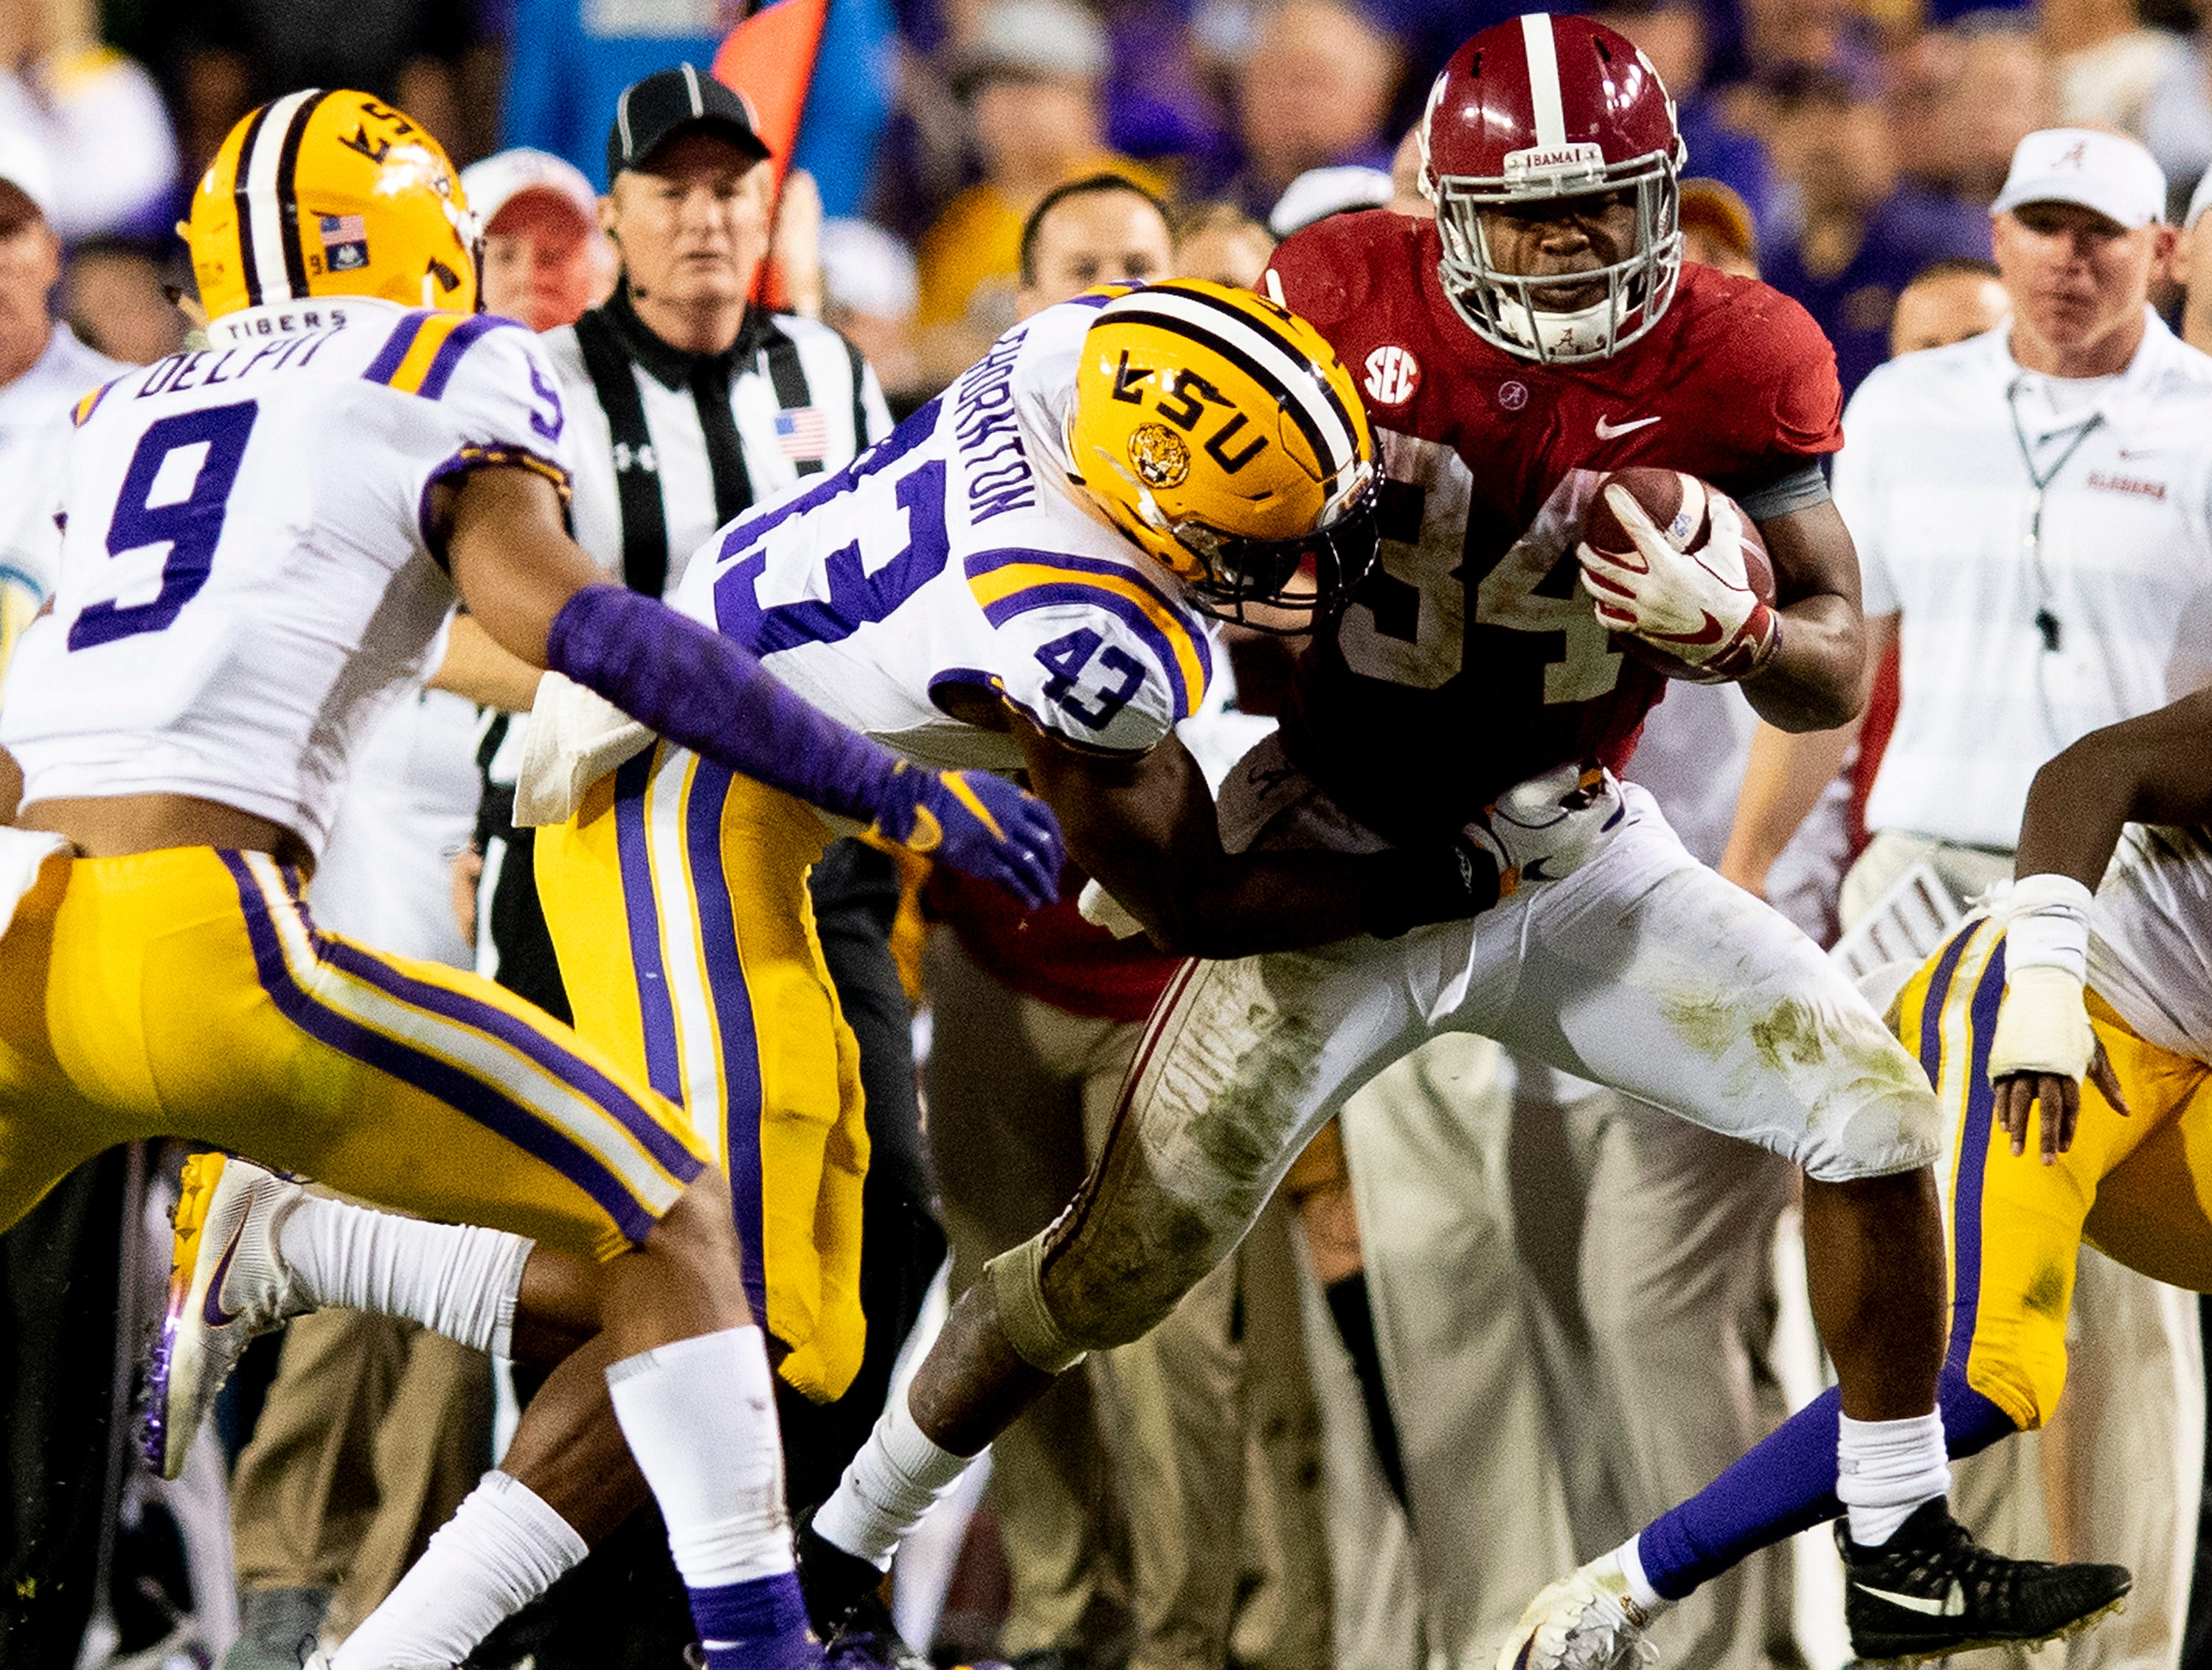 Alabama running back Damien Harris (34) carries the ball against LSU in second half action at Tiger Stadium in Baton Rouge, La., on Saturday November 3, 2018.